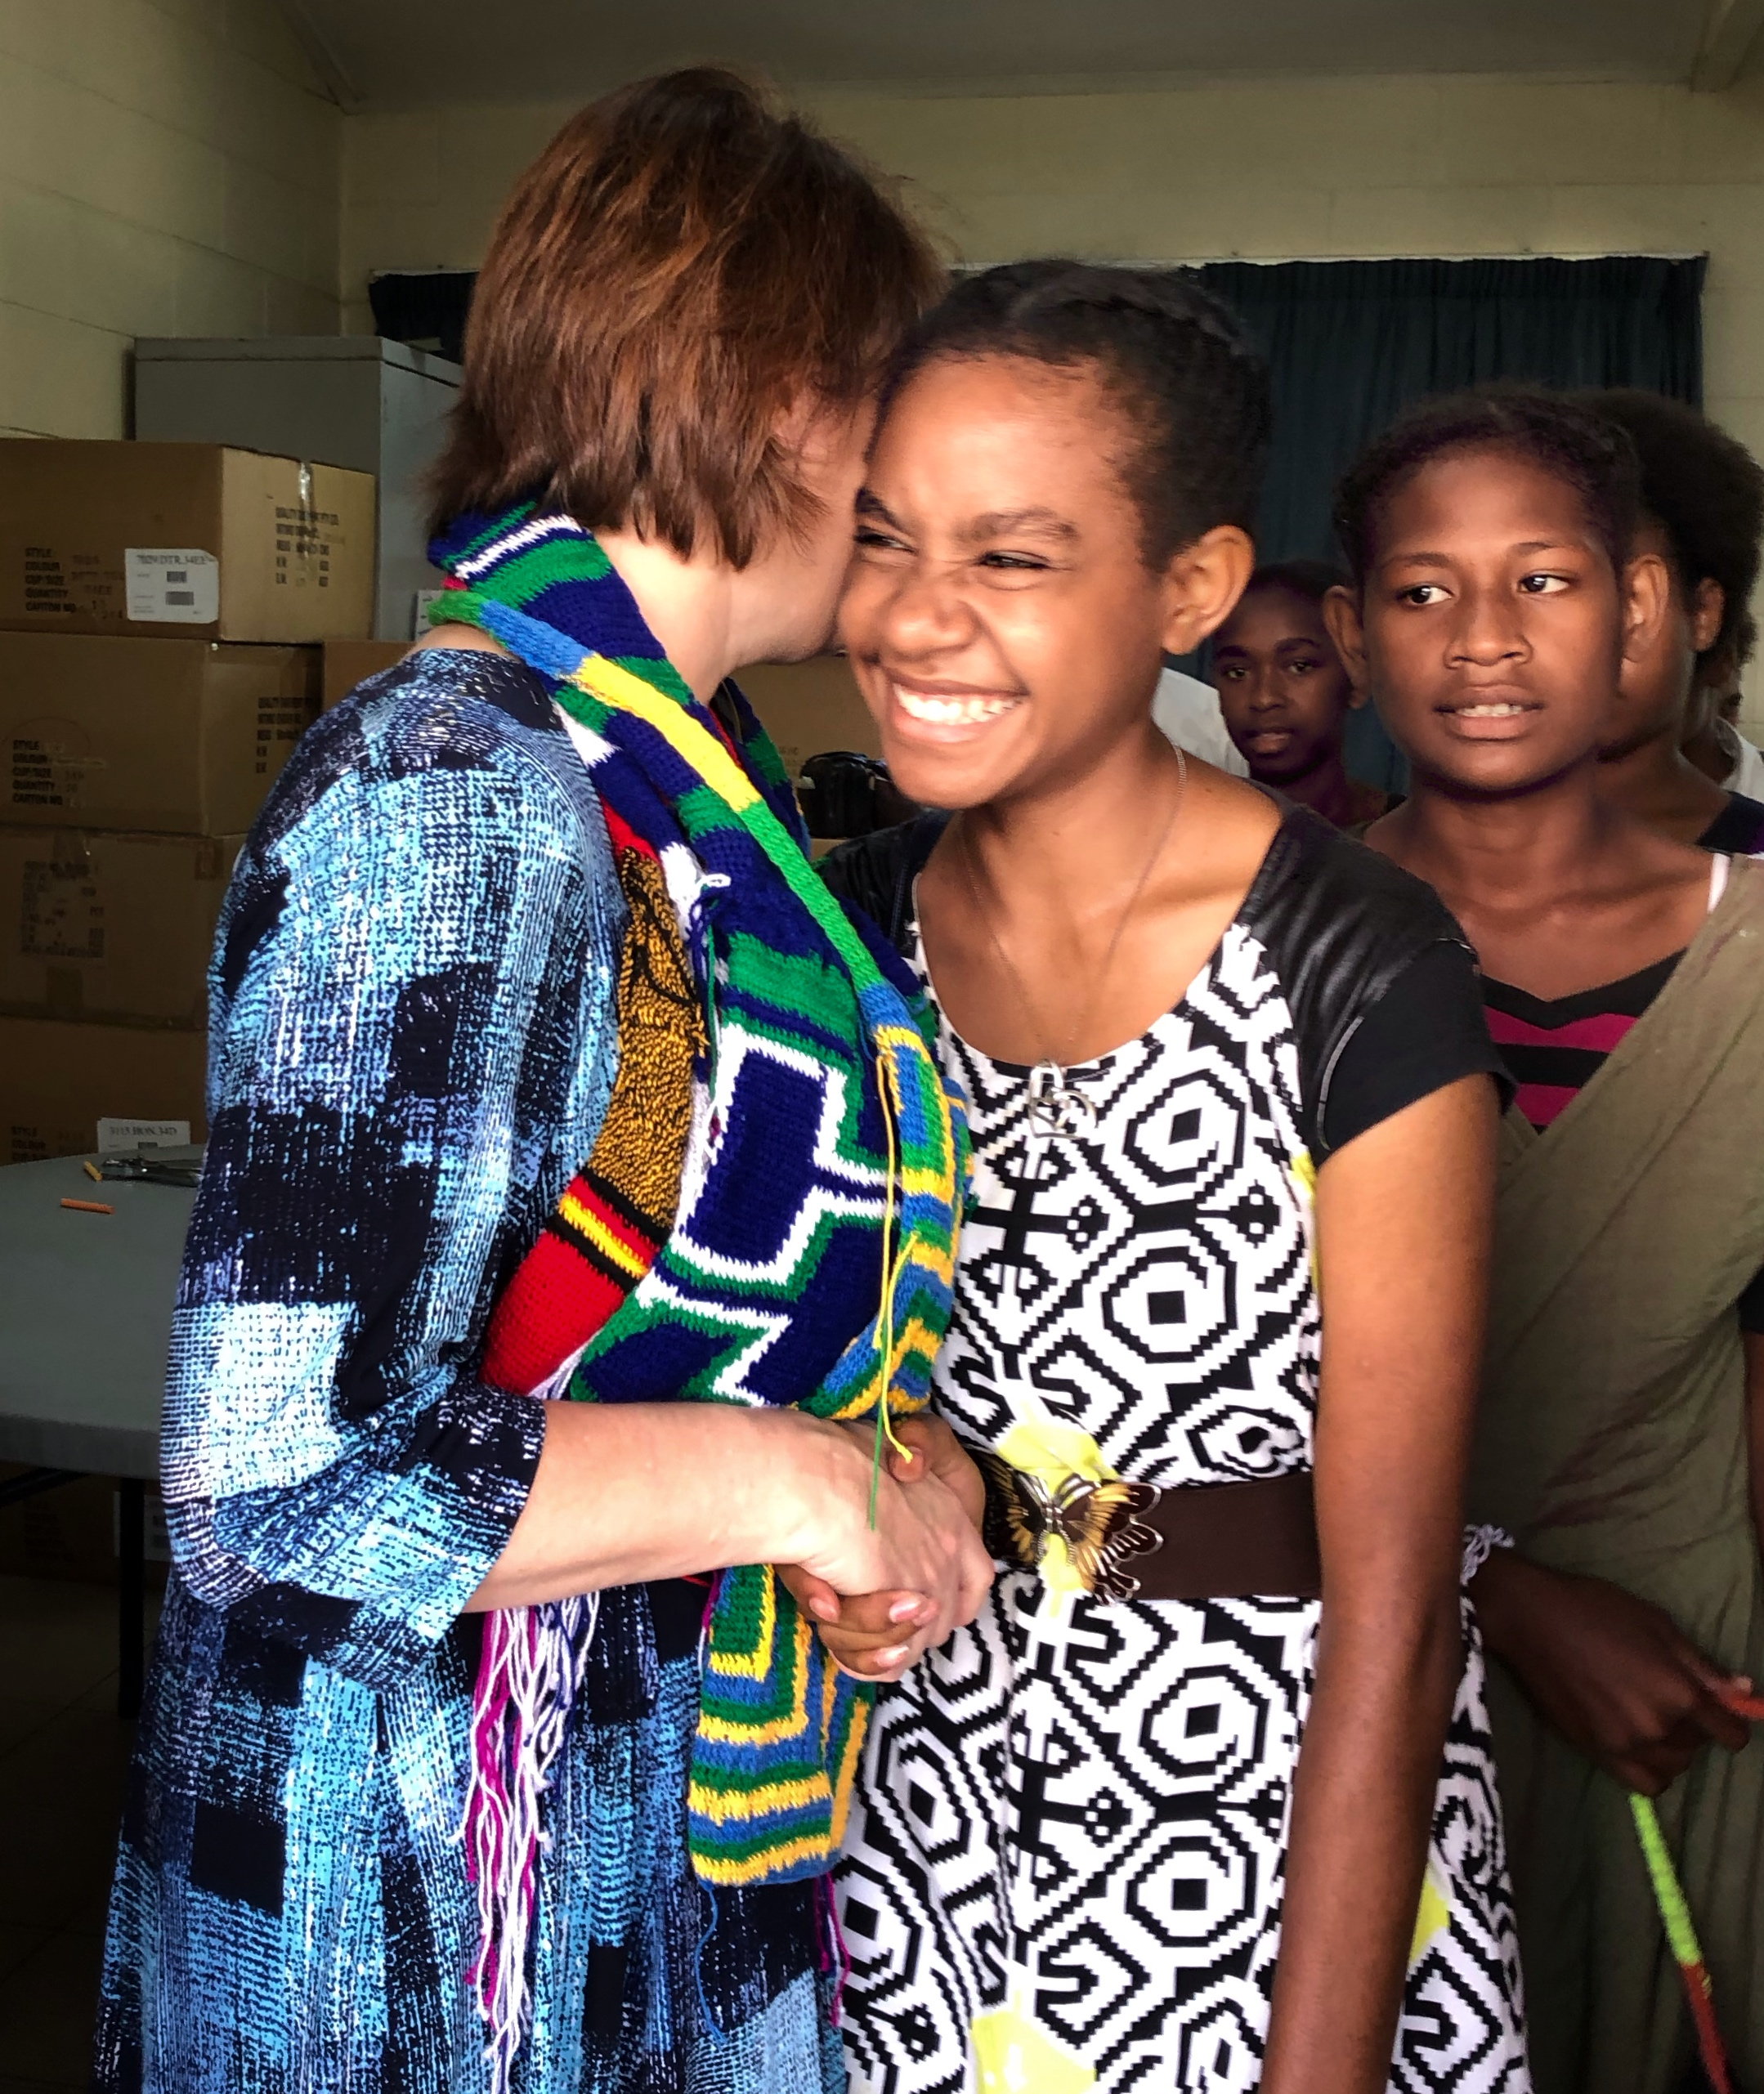 Sister Sharon Eubank greets members from the Port Moresby Papua New Guinea Stake and the Gerehu and Rigo districts in Papua New Guinea during a visit to the Pacific Area in October 2019.